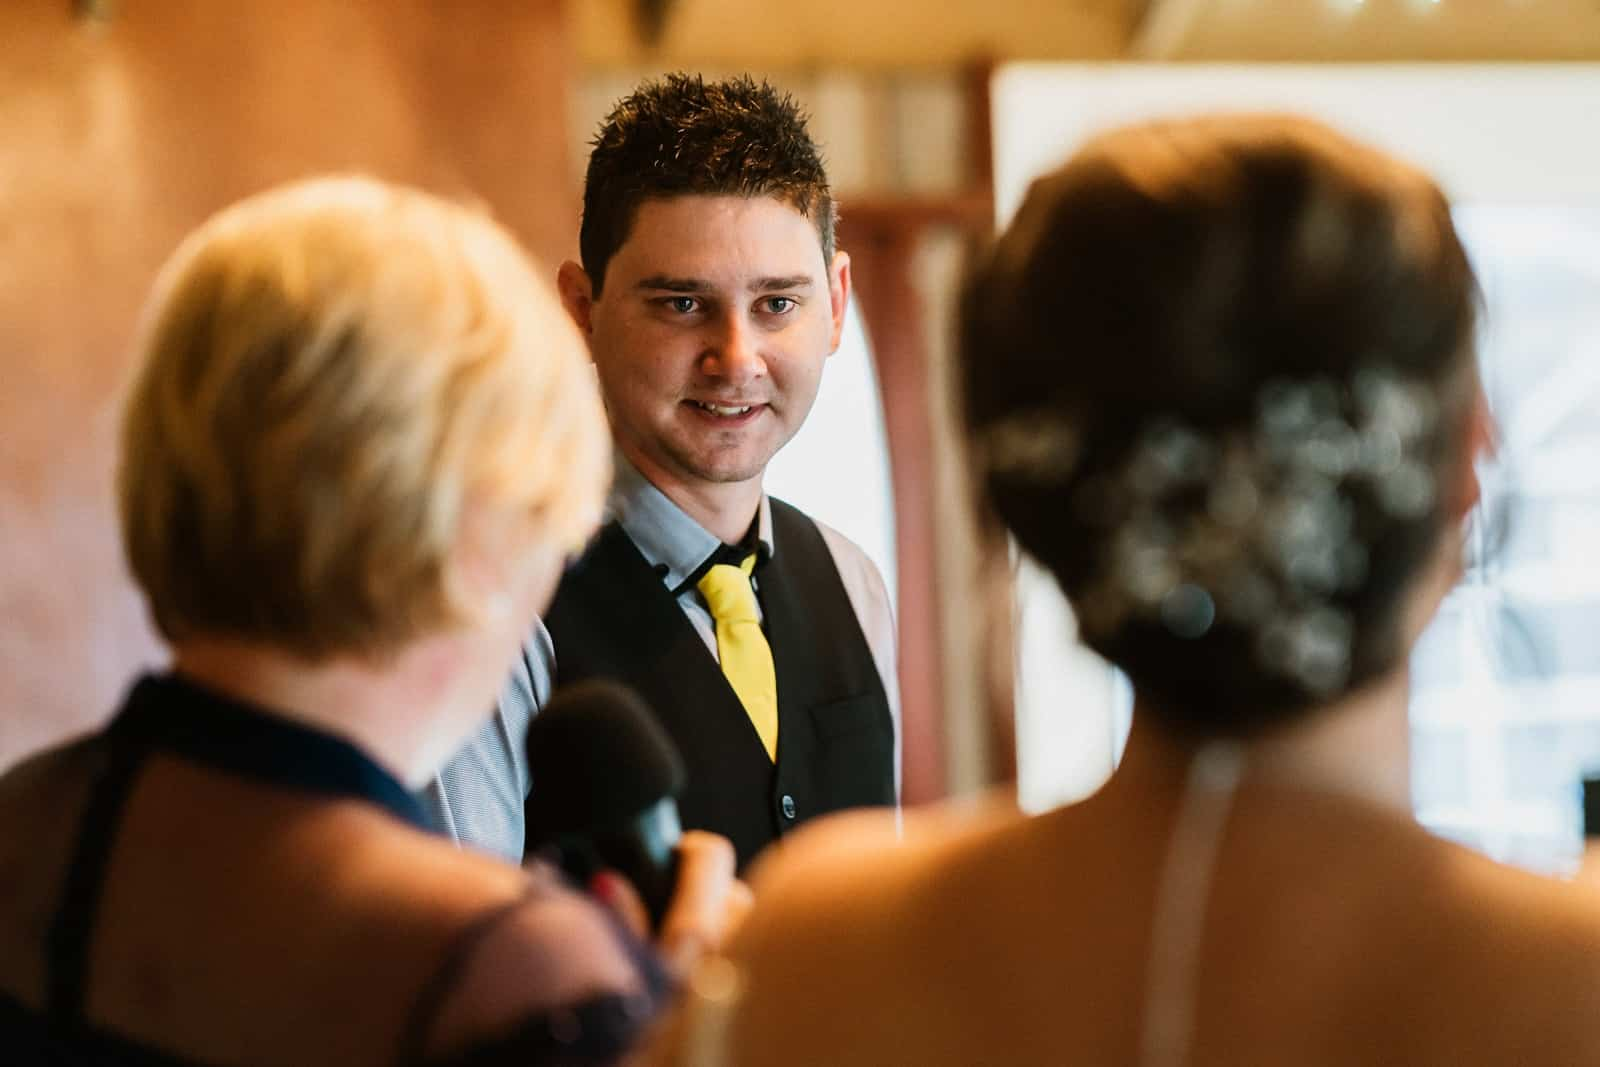 Groom during vows